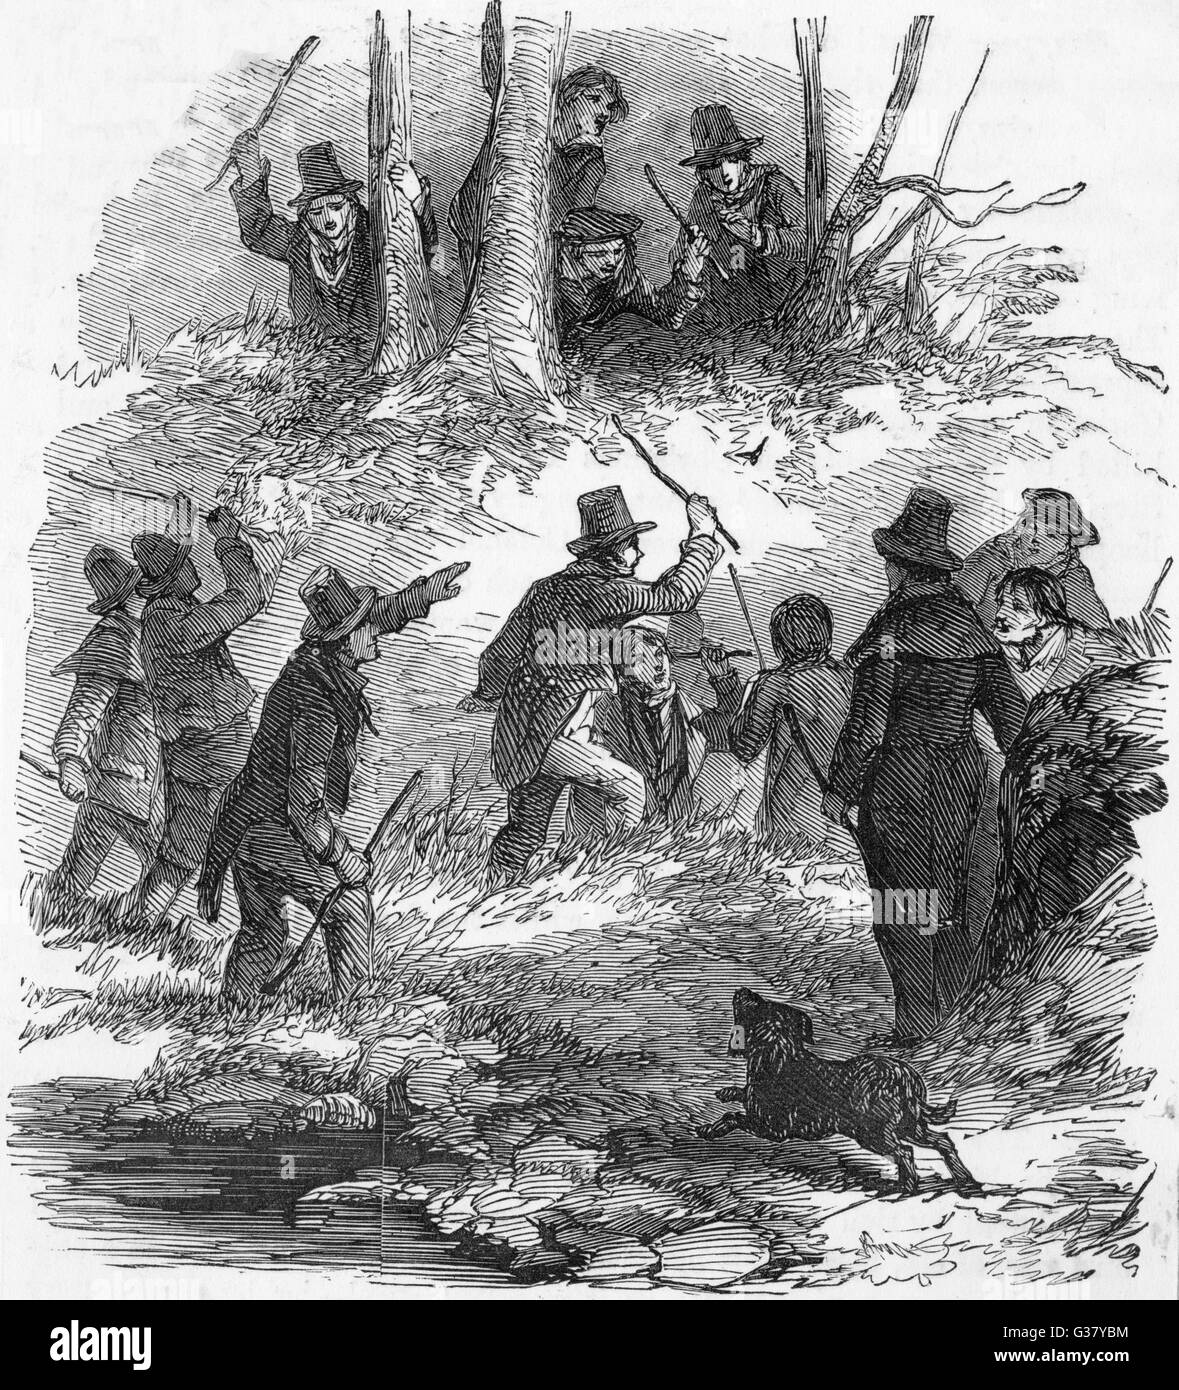 Irish country folk hunt the wren on Christmas Day (picture 1 of 2).     Date: 1850 - Stock Image